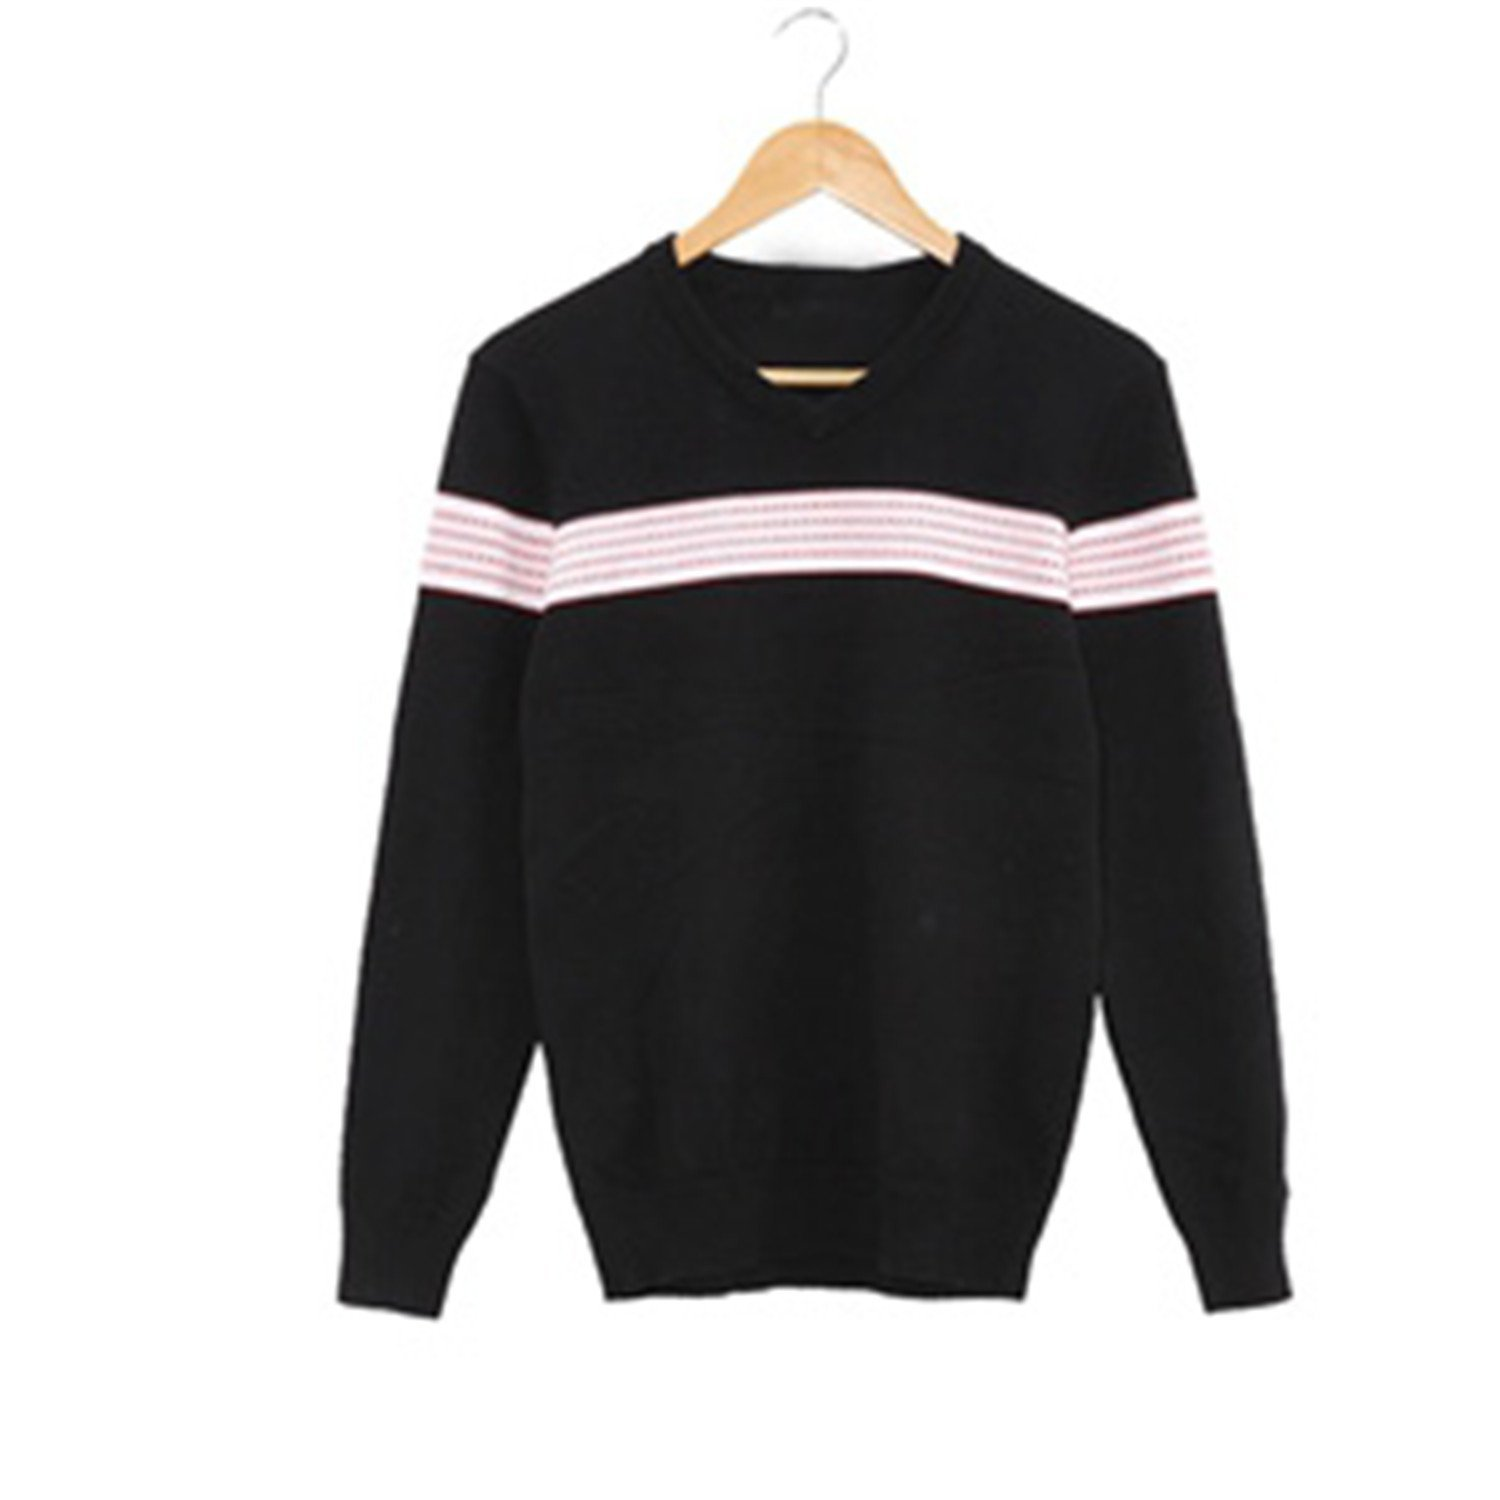 2db7b693a75 Get Quotations · B dressy Handsome and Silm Mens Sweaters Pullovers Striped  Soilders Link Preppy Style Fashion Men V